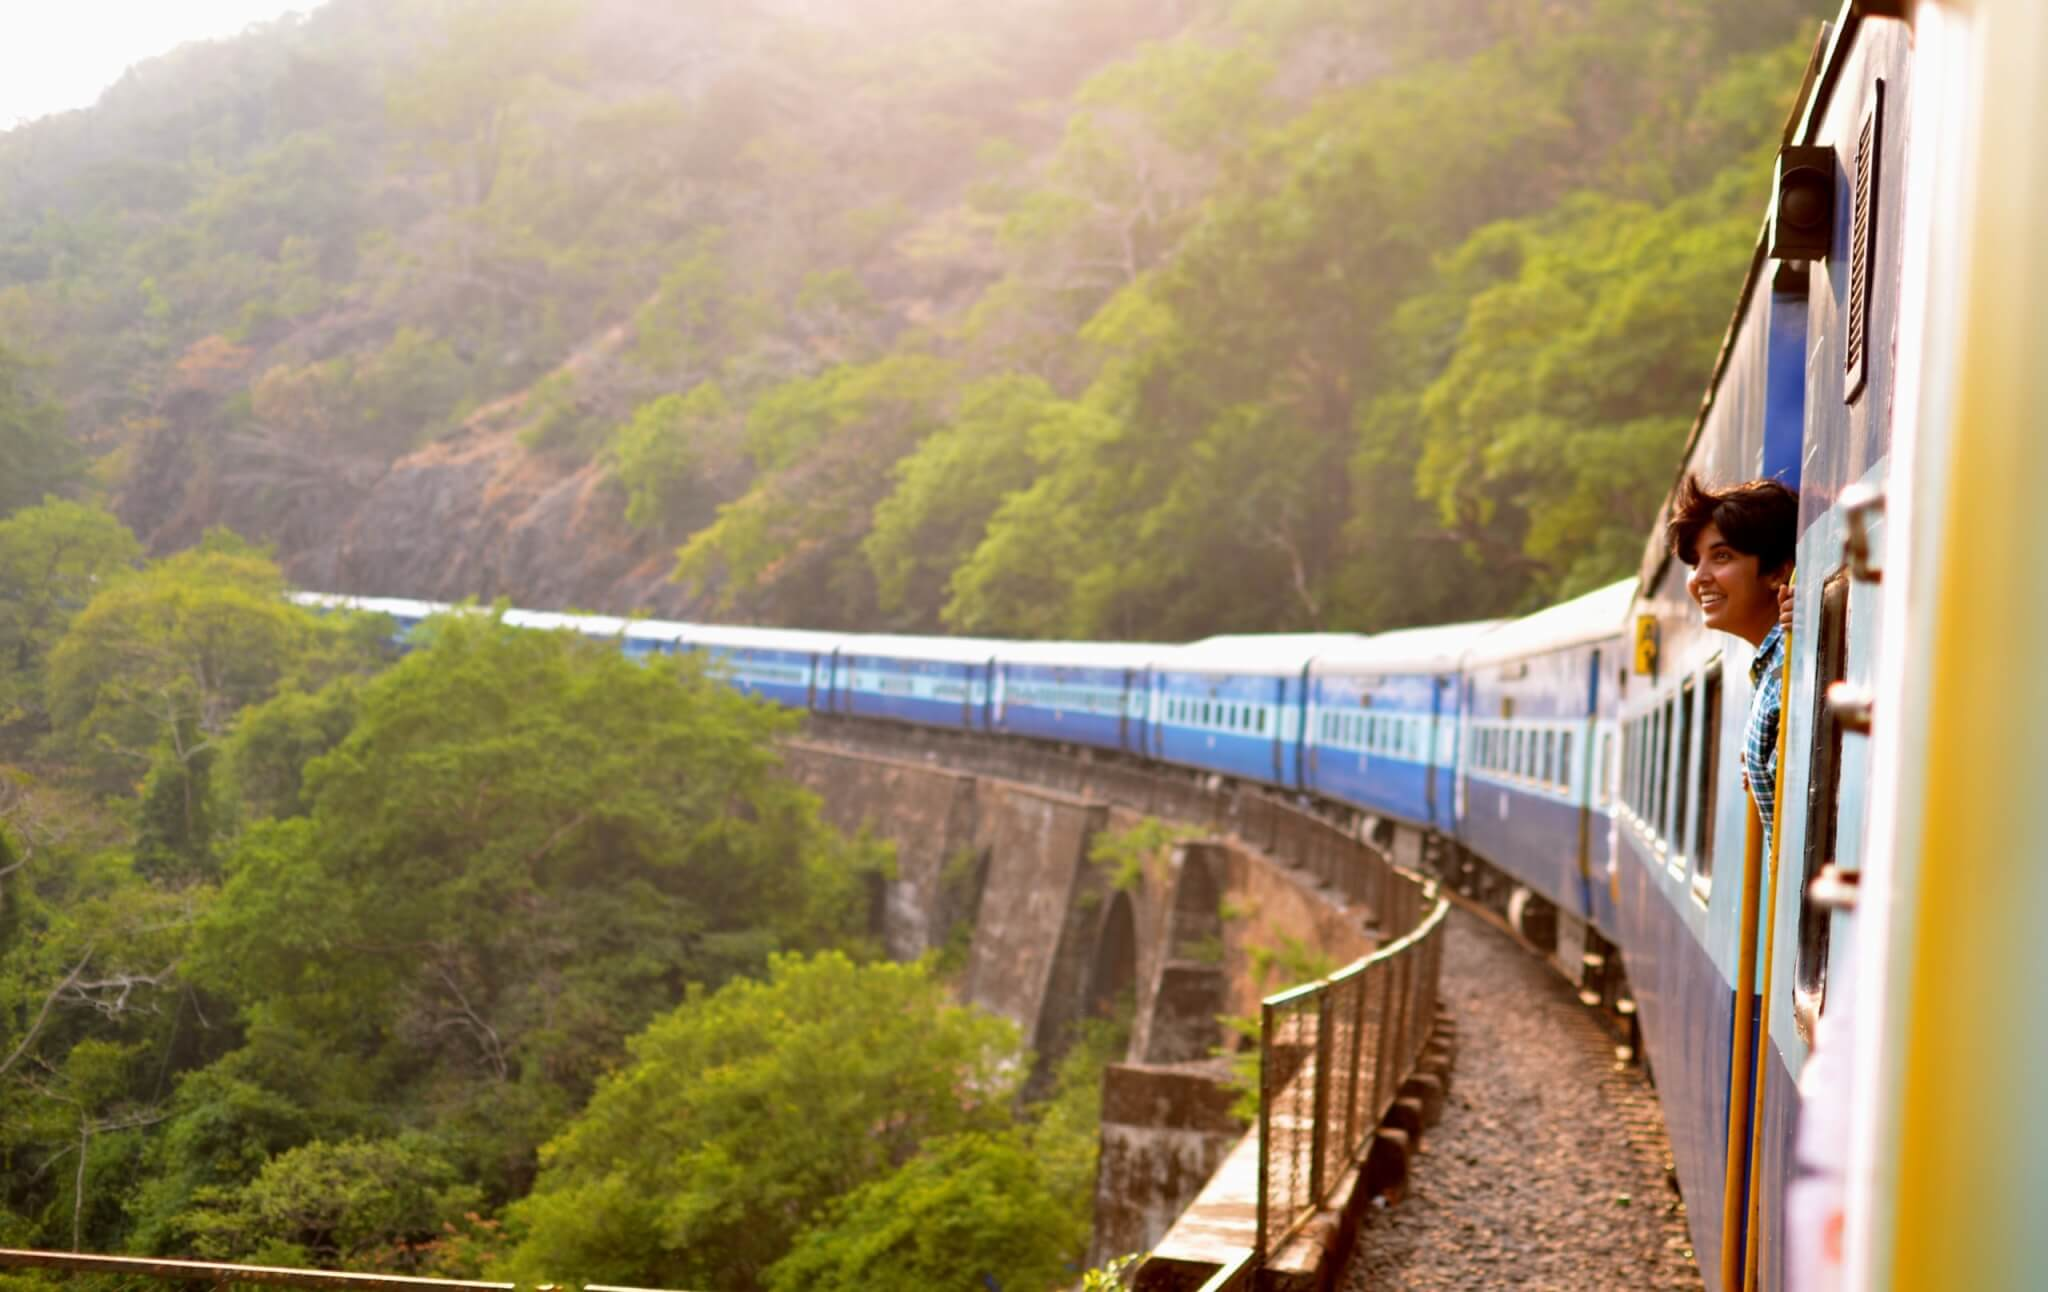 travel image of a train